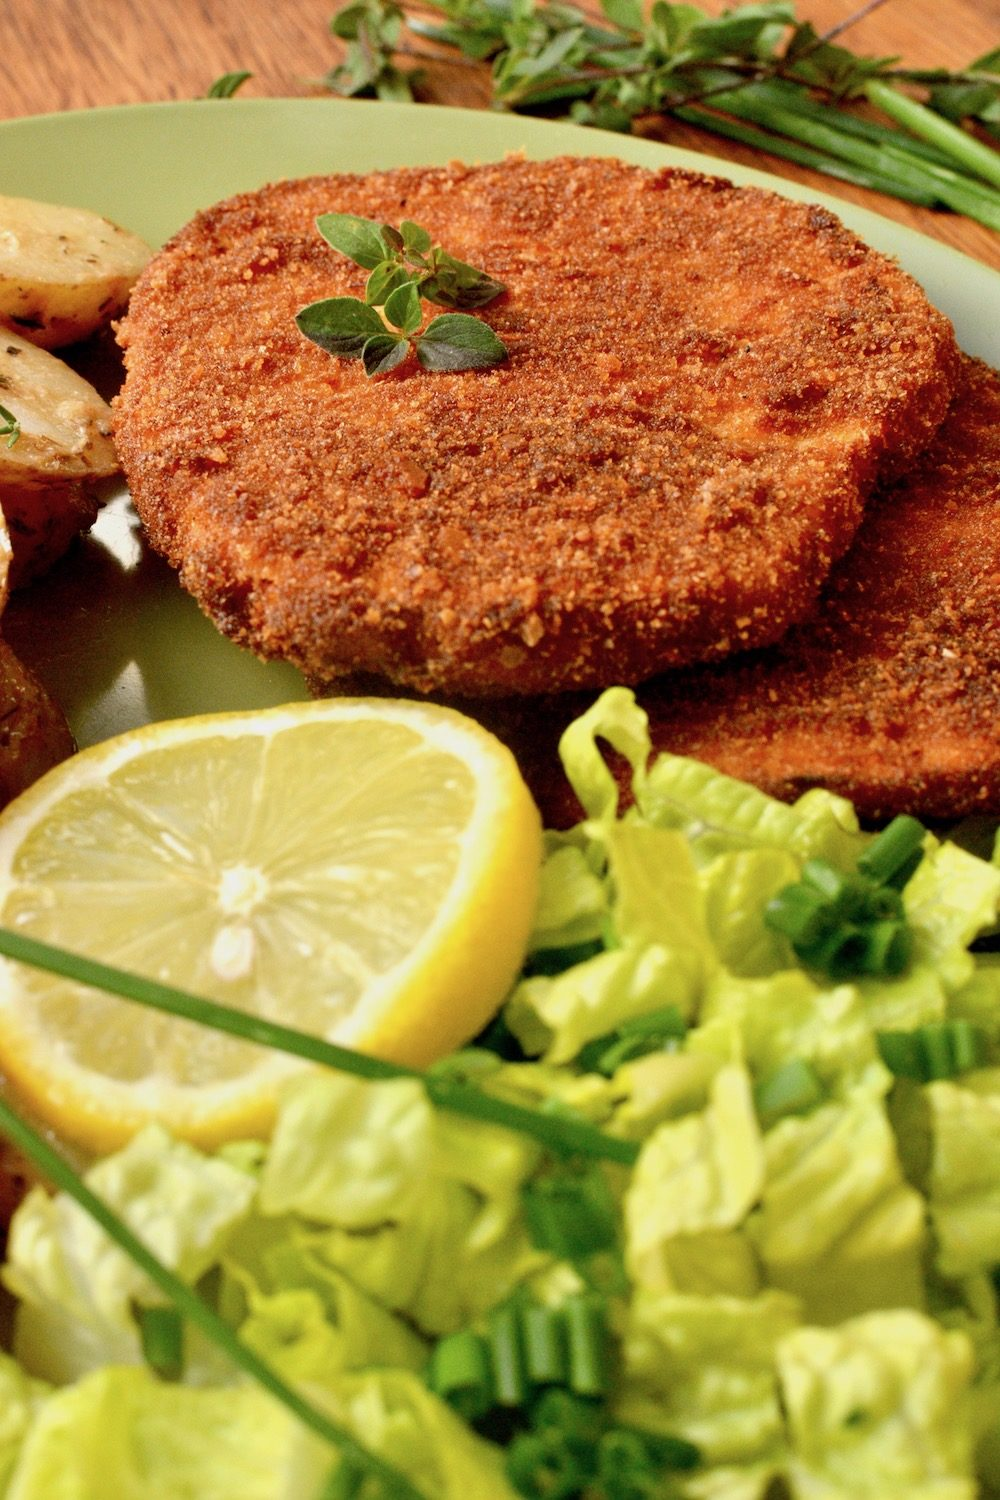 The dark golden brown crust of the freshly cooked vegan schnitzel